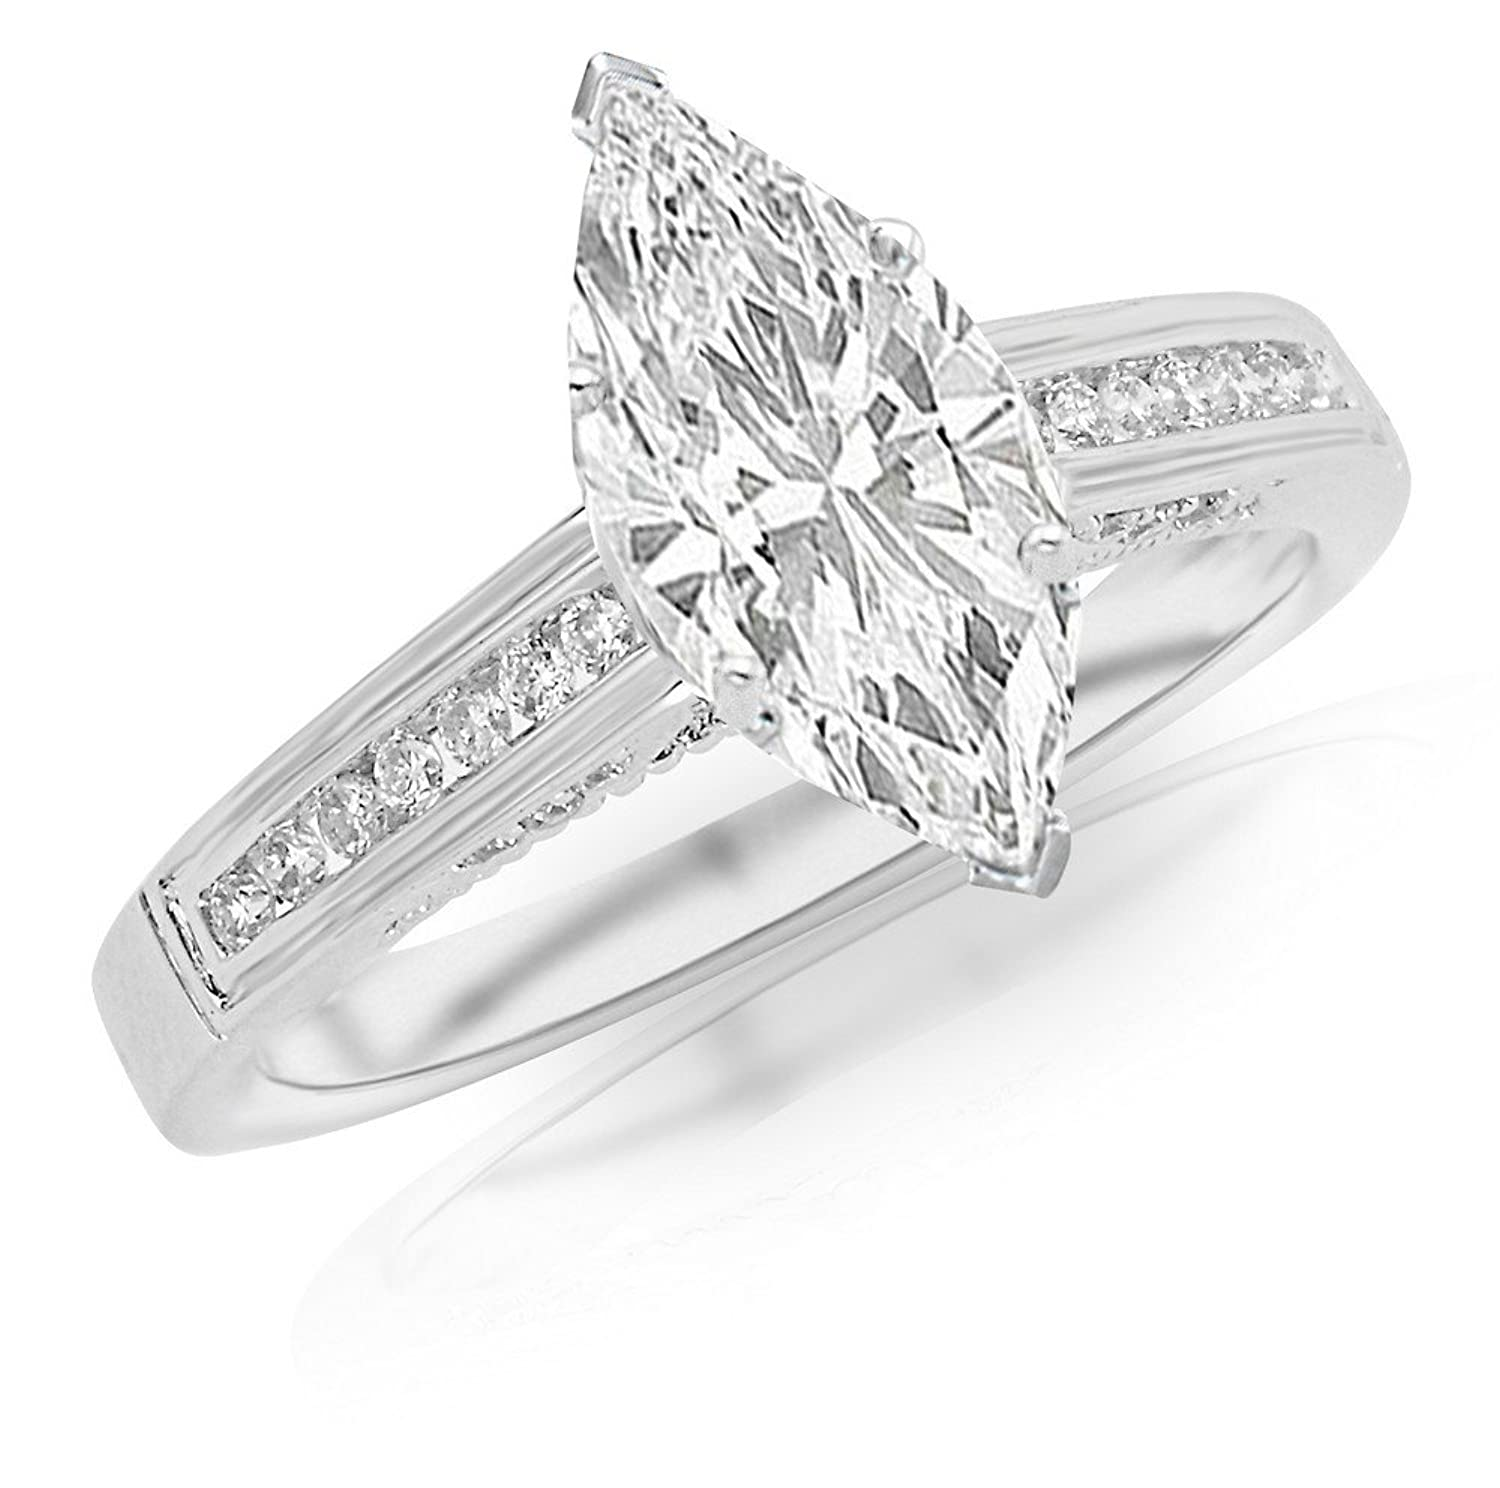 0.95 Ctw 14K White Gold GIA Certified Marquise Cut Channel Set Round Diamond Engagement Ring, 0.75 Ct G-H SI1-SI2 Center